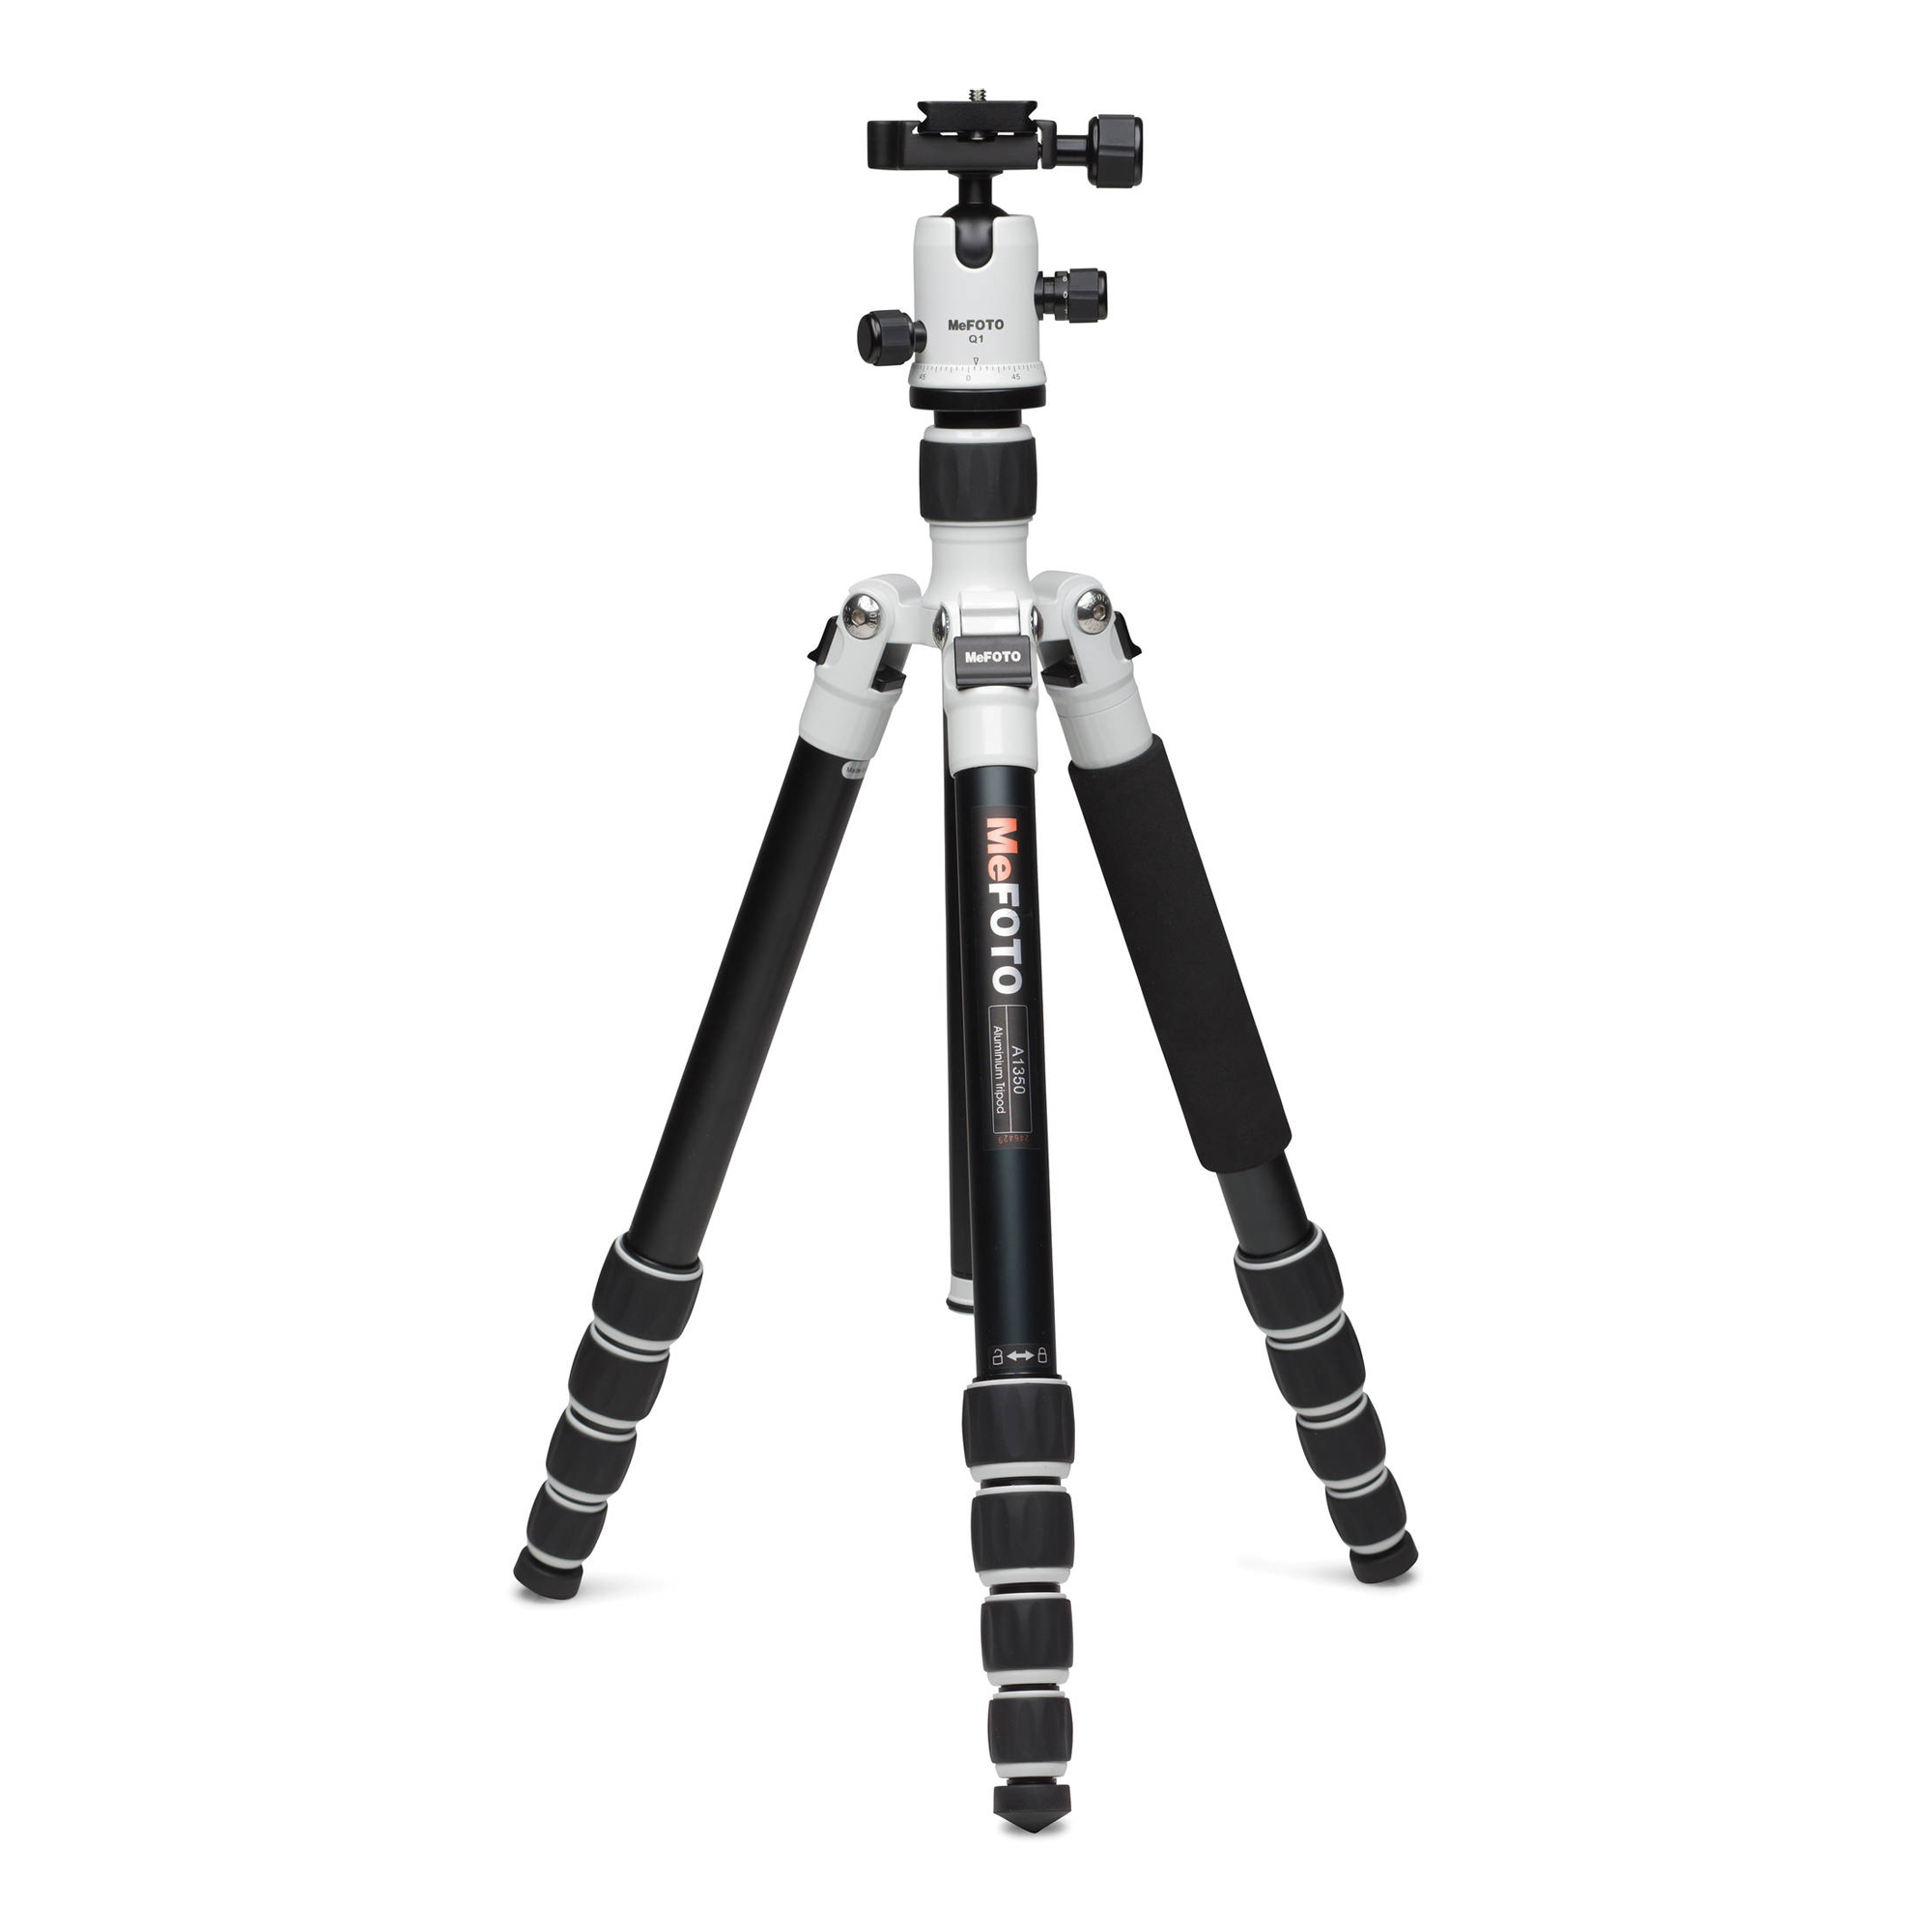 RoadTrip Travel Tripod Kit (White)